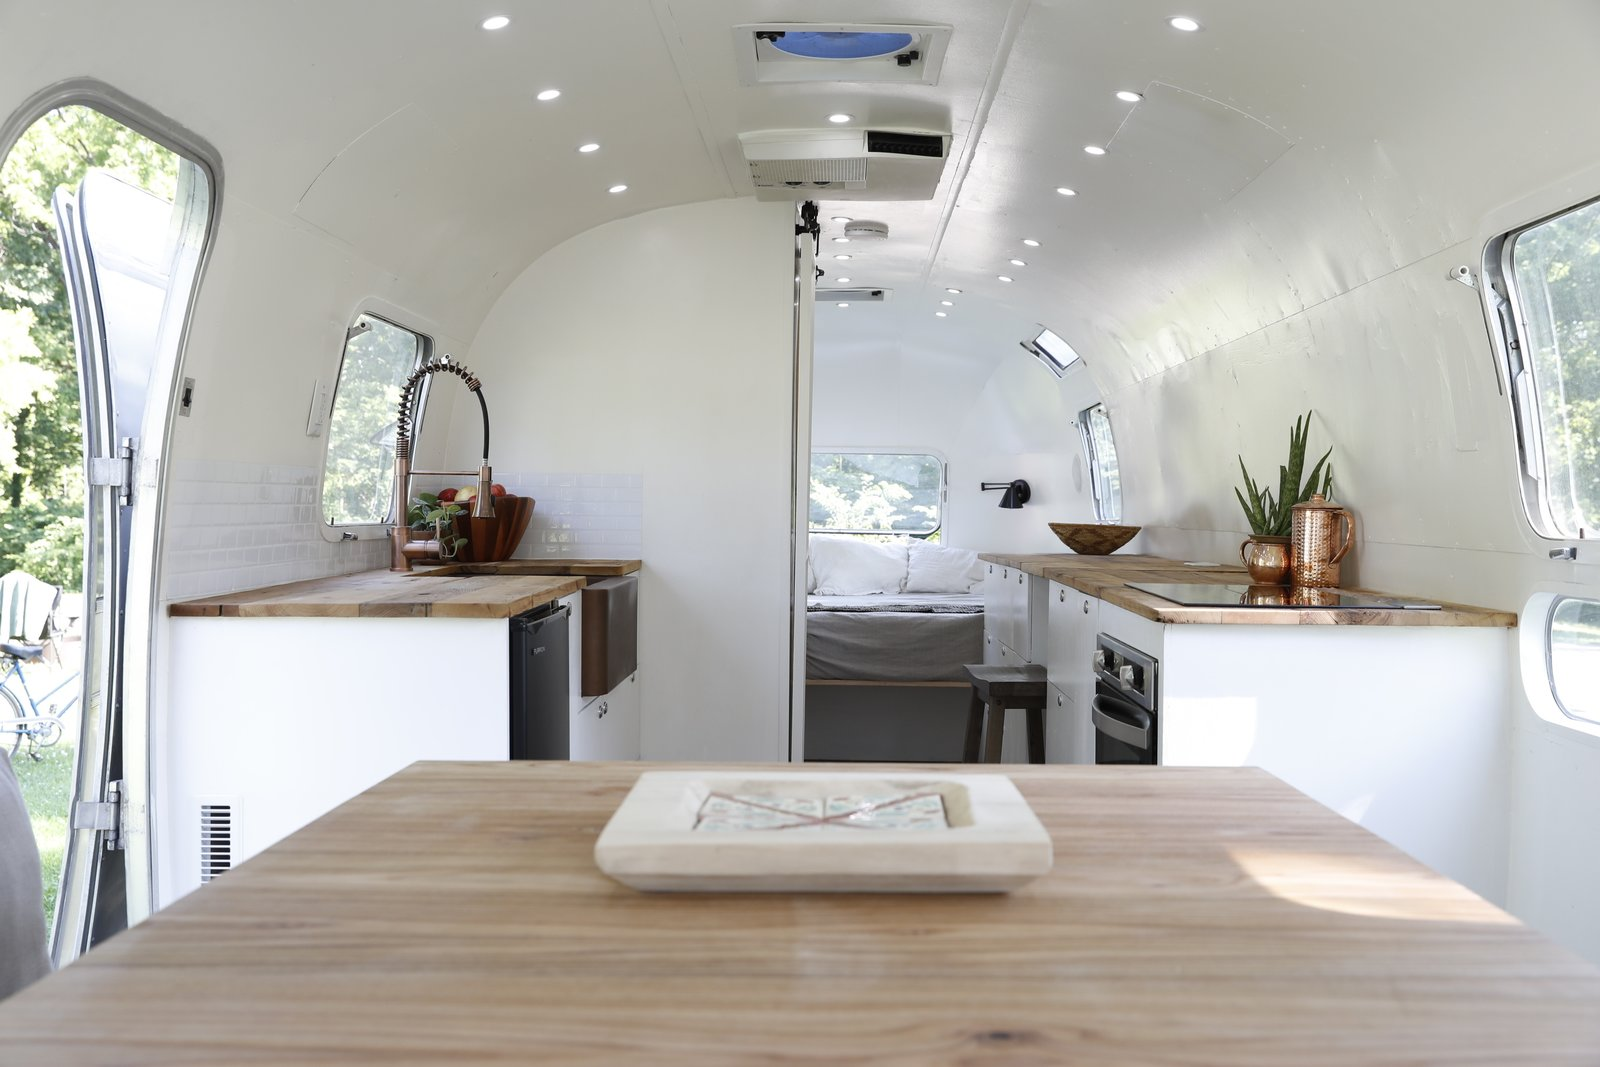 Kitchen, Wood Counter, White Cabinet, Drop In Sink, Cooktops, Dishwasher, and Subway Tile Backsplashe  Photo 8 of 15 in Airstream Dream Team: These Women Travel the Country, Turning Retro RVs Into Homes